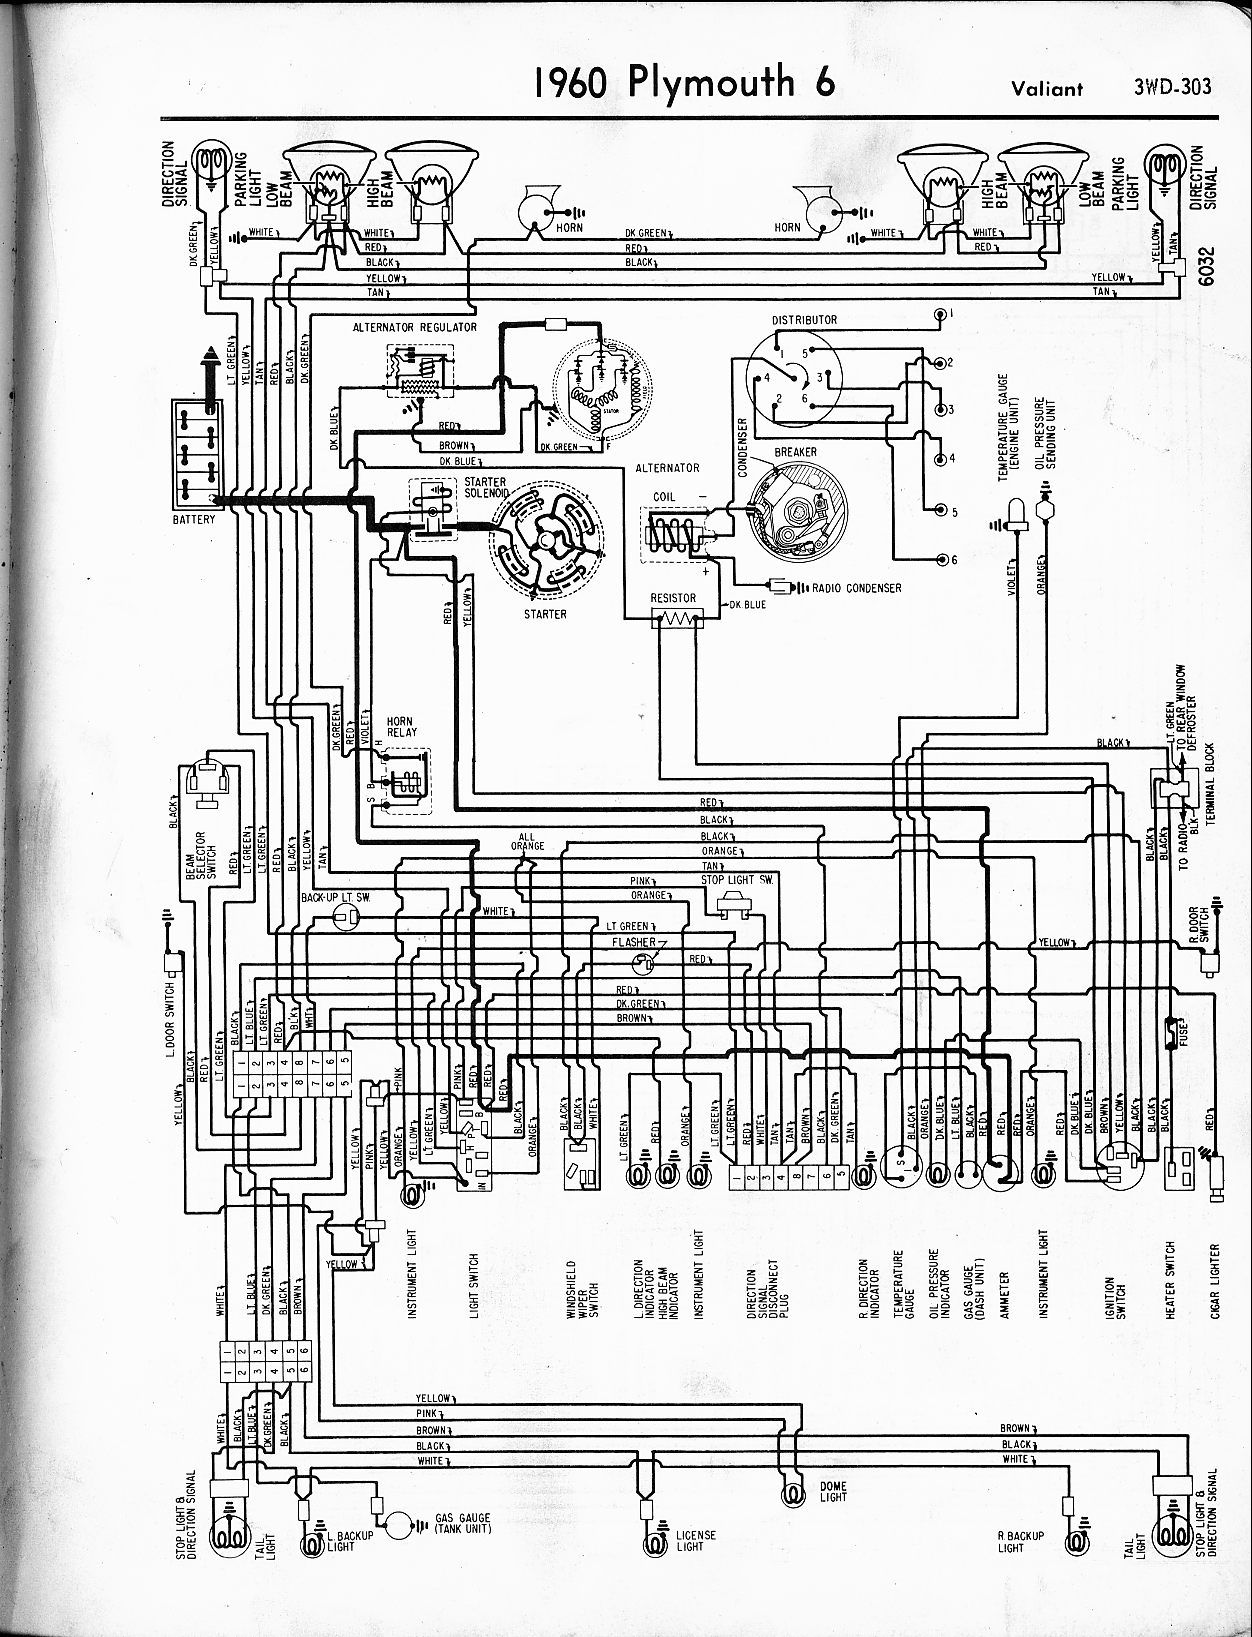 wiring diagram 1973 chrysler imperial best wiring library 1971 Chrysler New Yorker wiring diagram 1973 chrysler imperial wiring diagram schematic name basic electrical wiring diagrams 1950 chrysler imperial